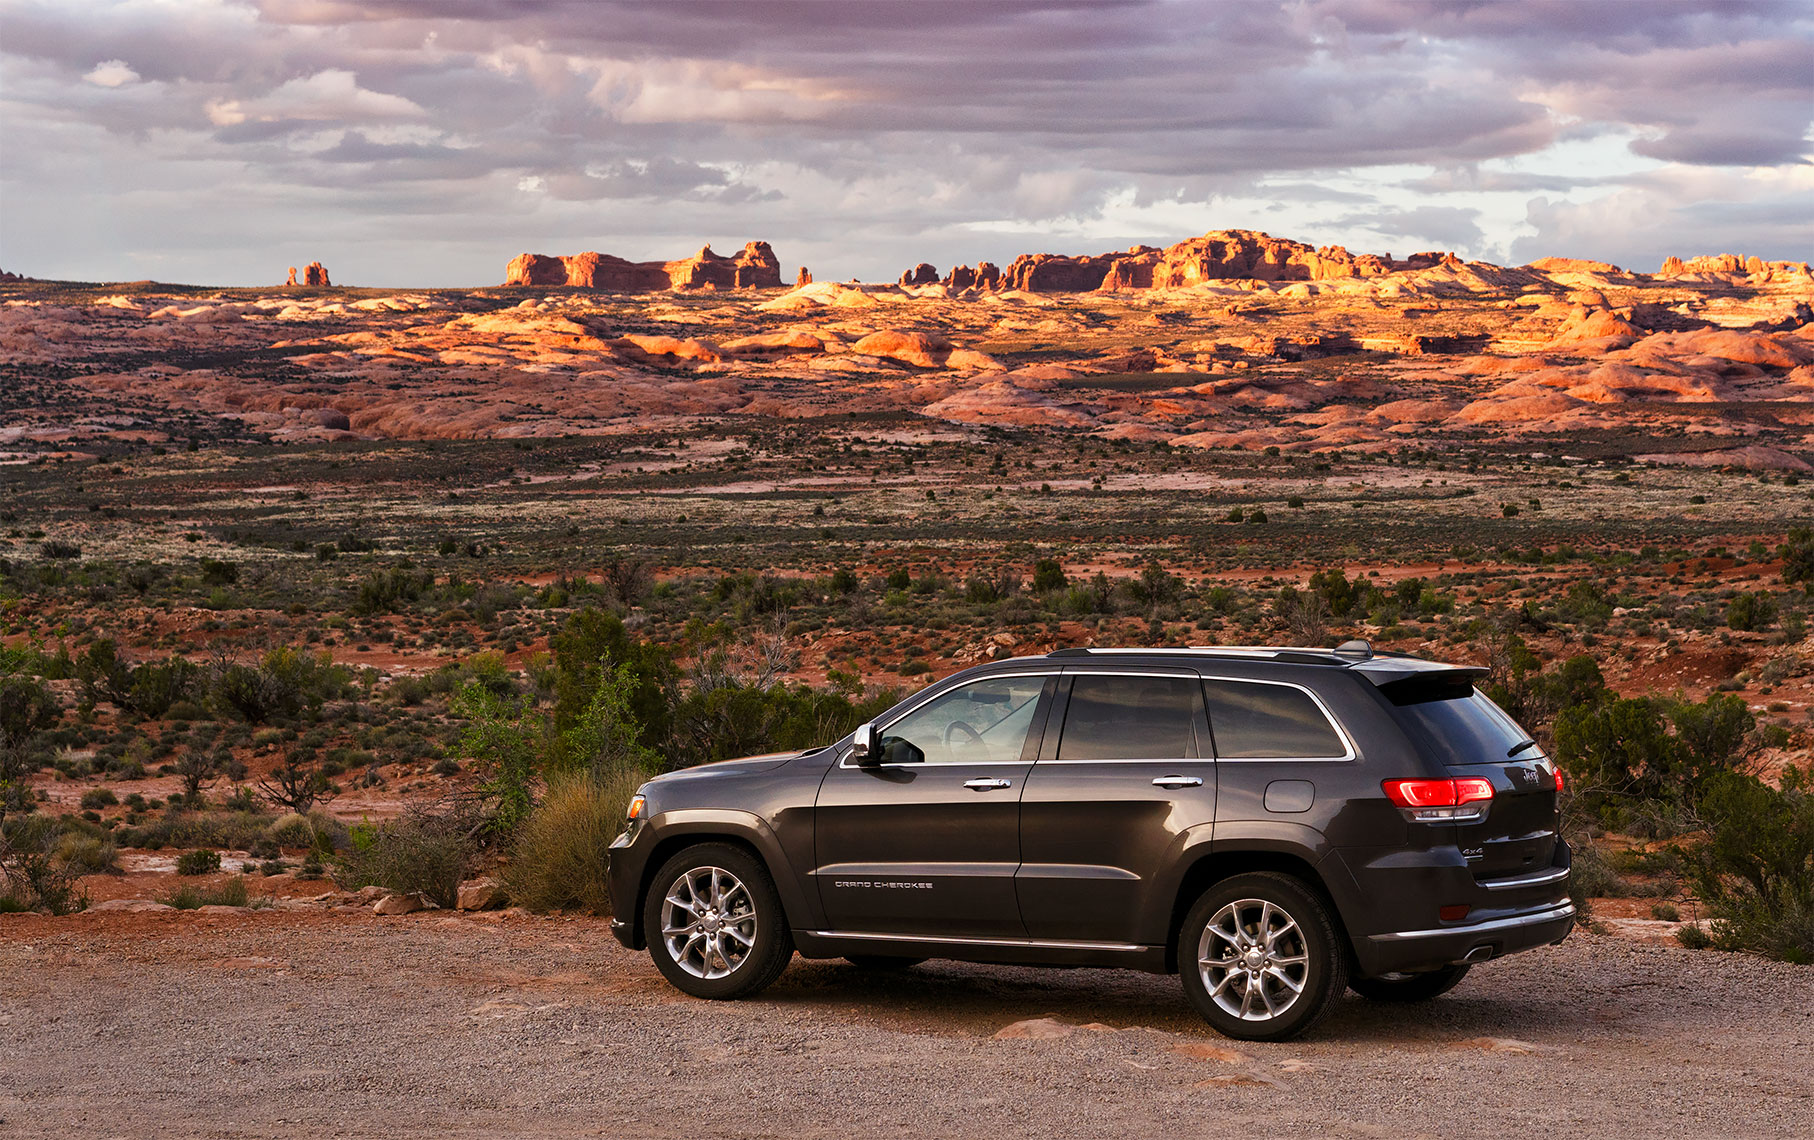 jeep_grand_cherokee_arches_sunrise